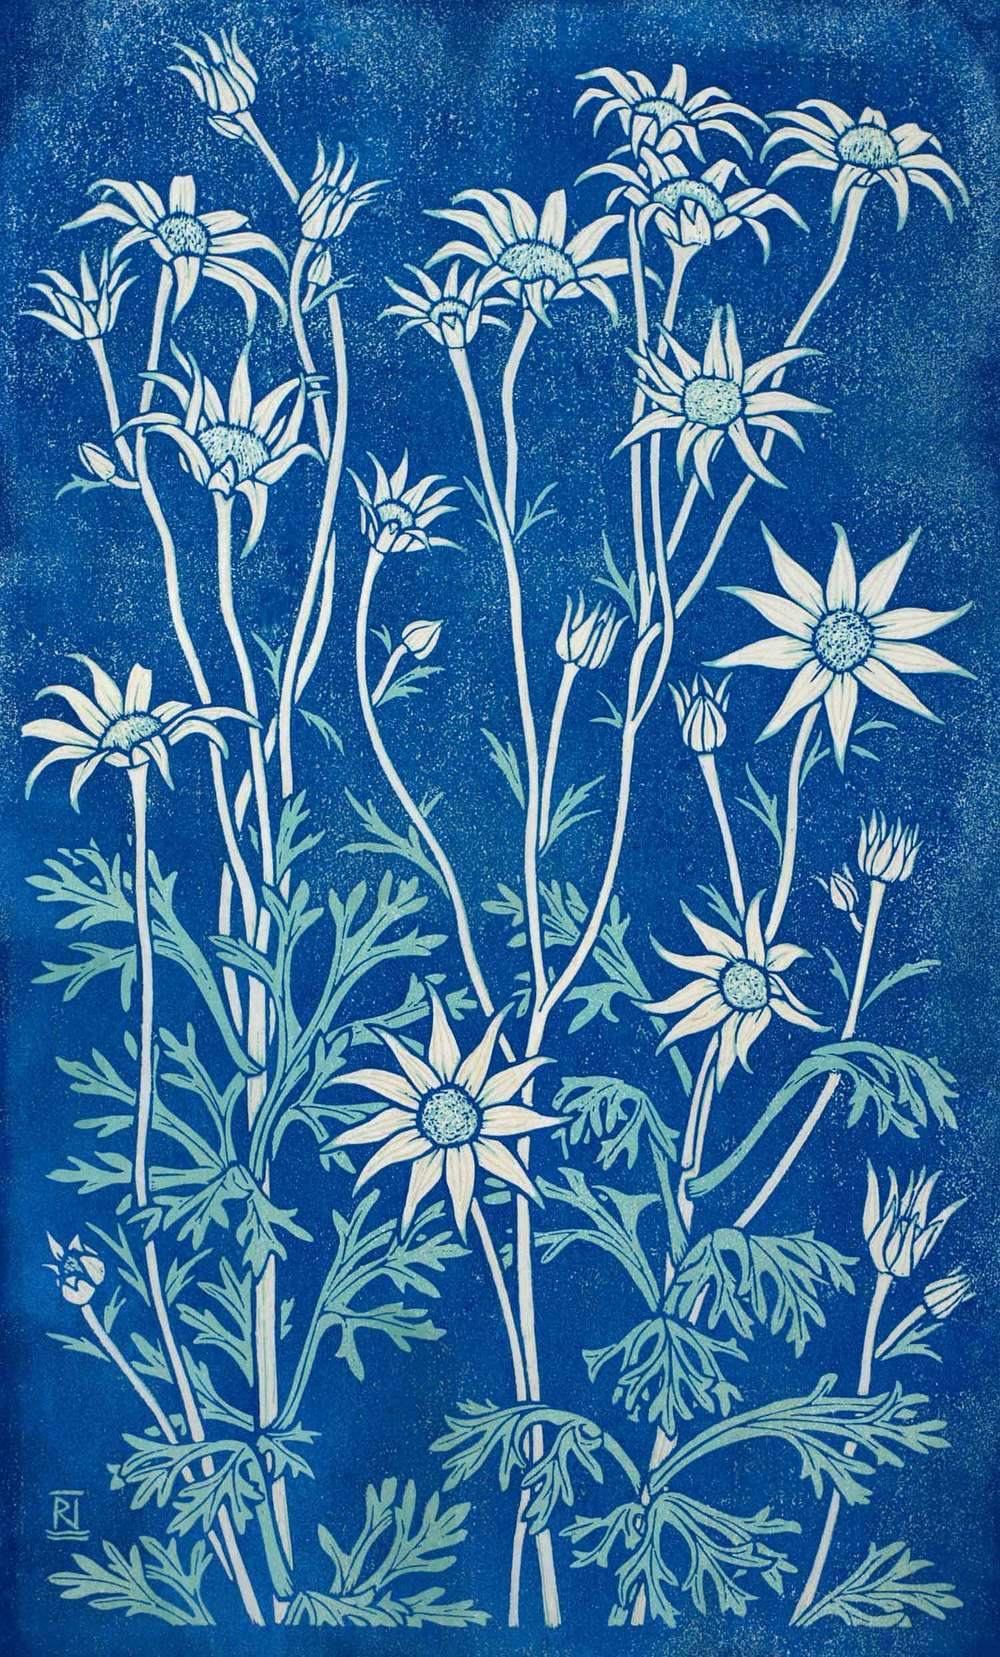 Flannel Flower II 49 x 30 cm    Edition of 16 Reduction linocut on handmade Japanese paper $950